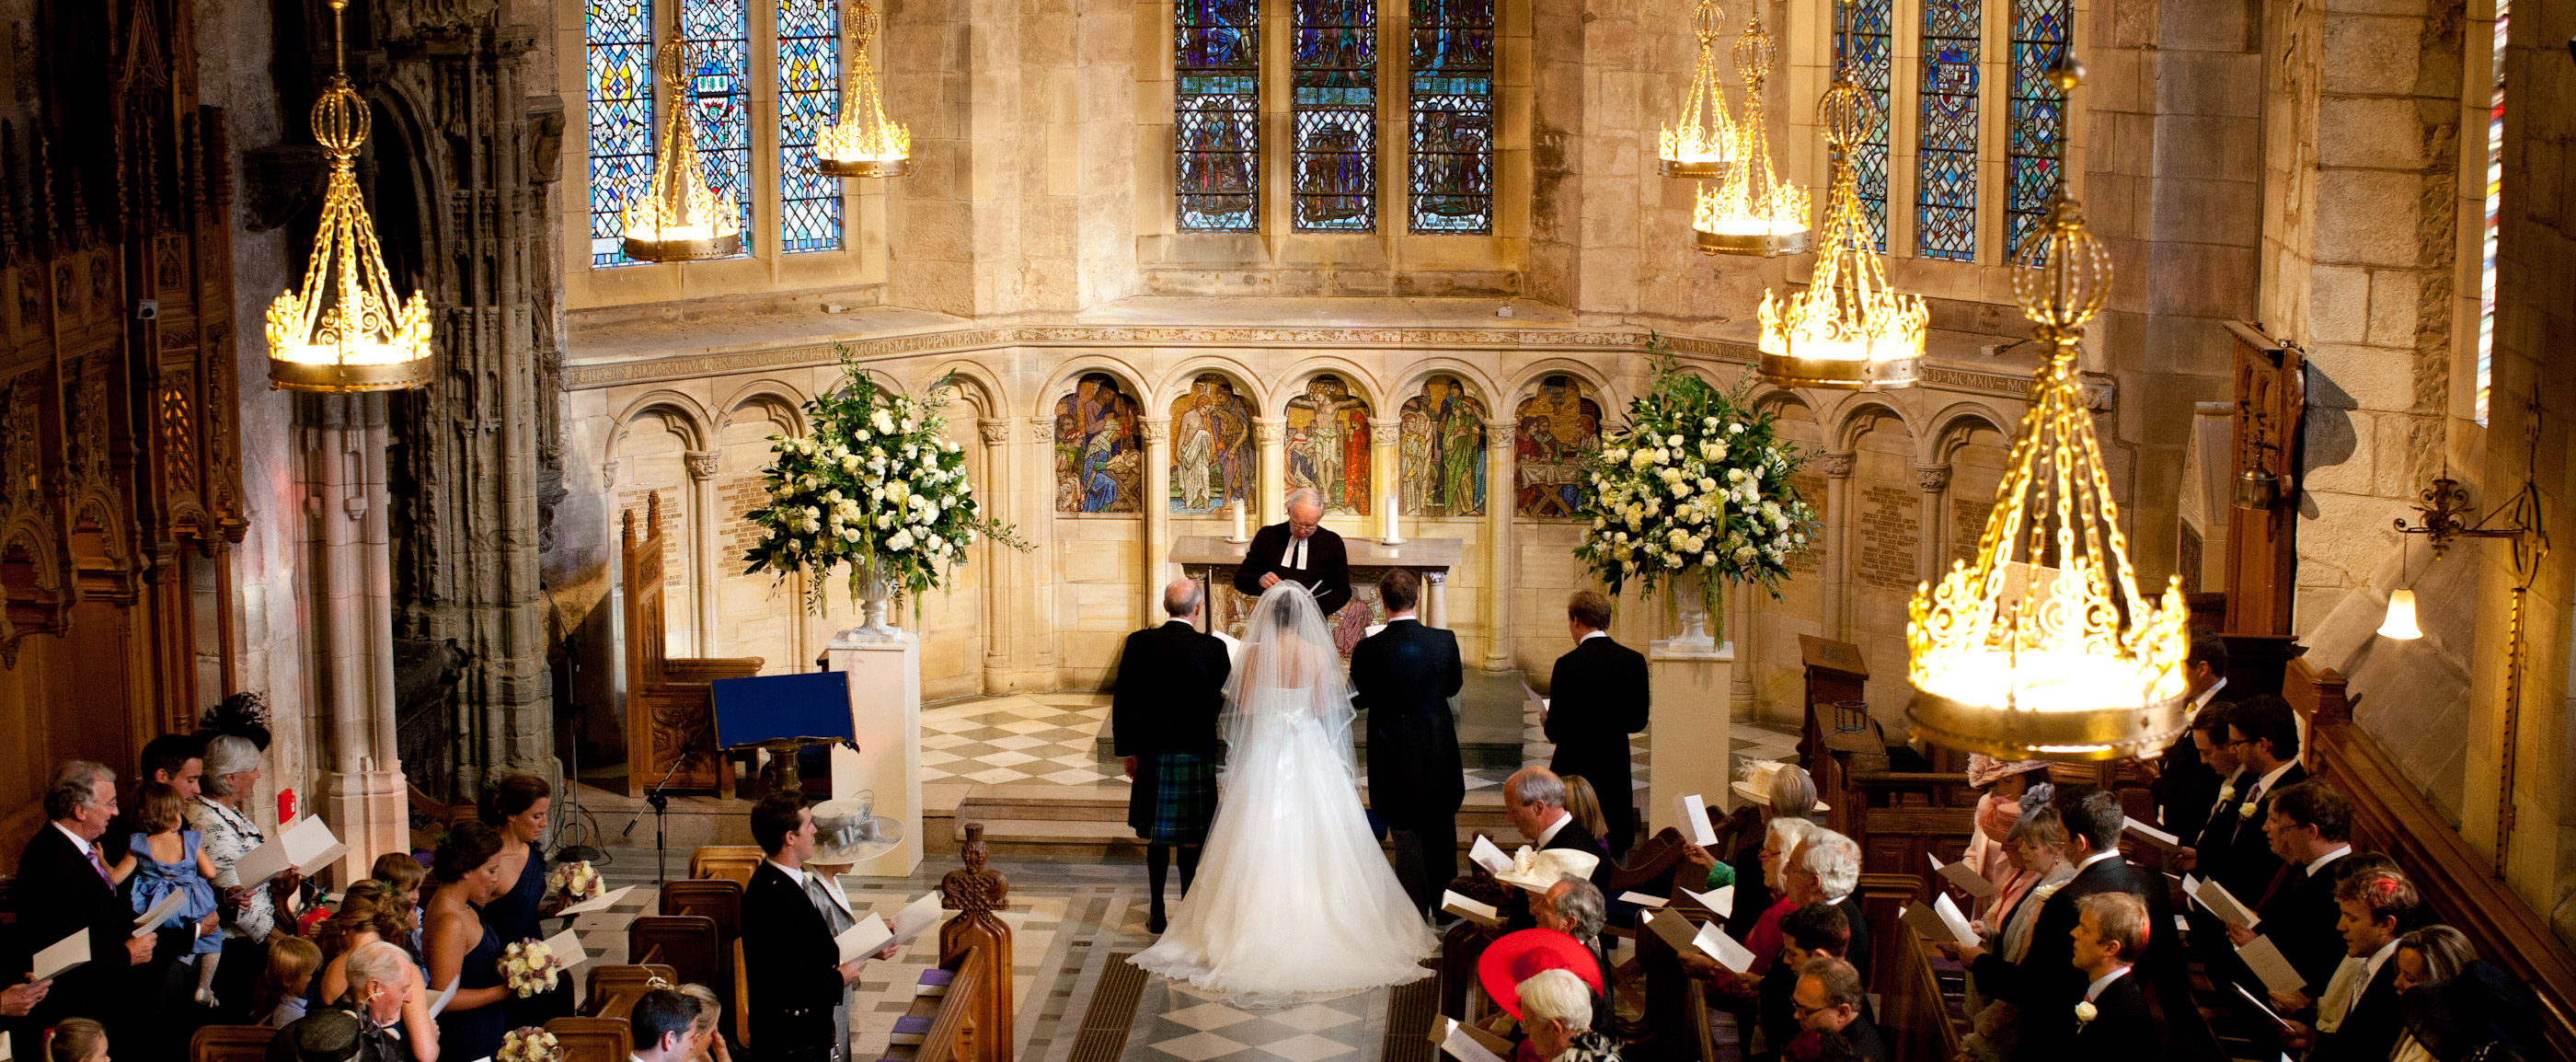 Litu Legal Requirements For Scottish Weddings And Getting Married Here